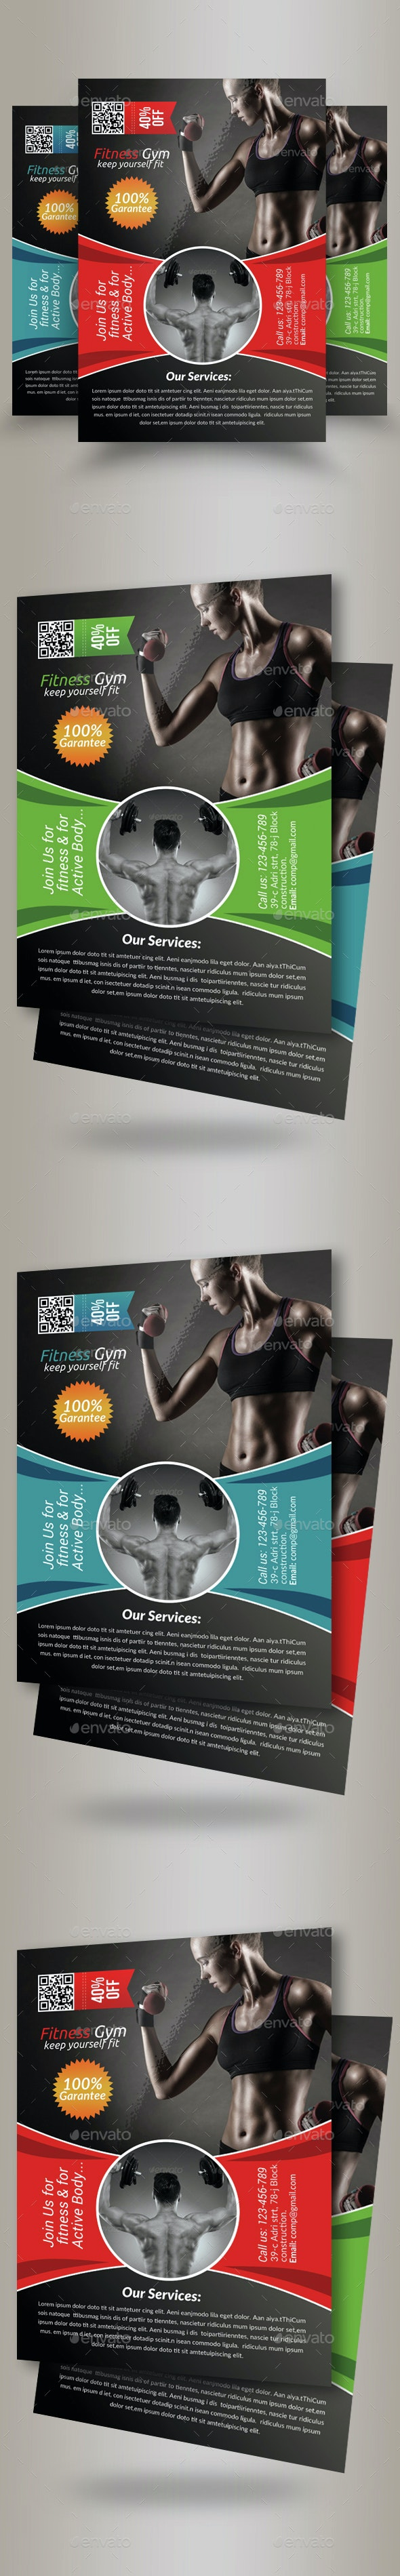 Body Fitness Gym Flyer Template - Sports Events